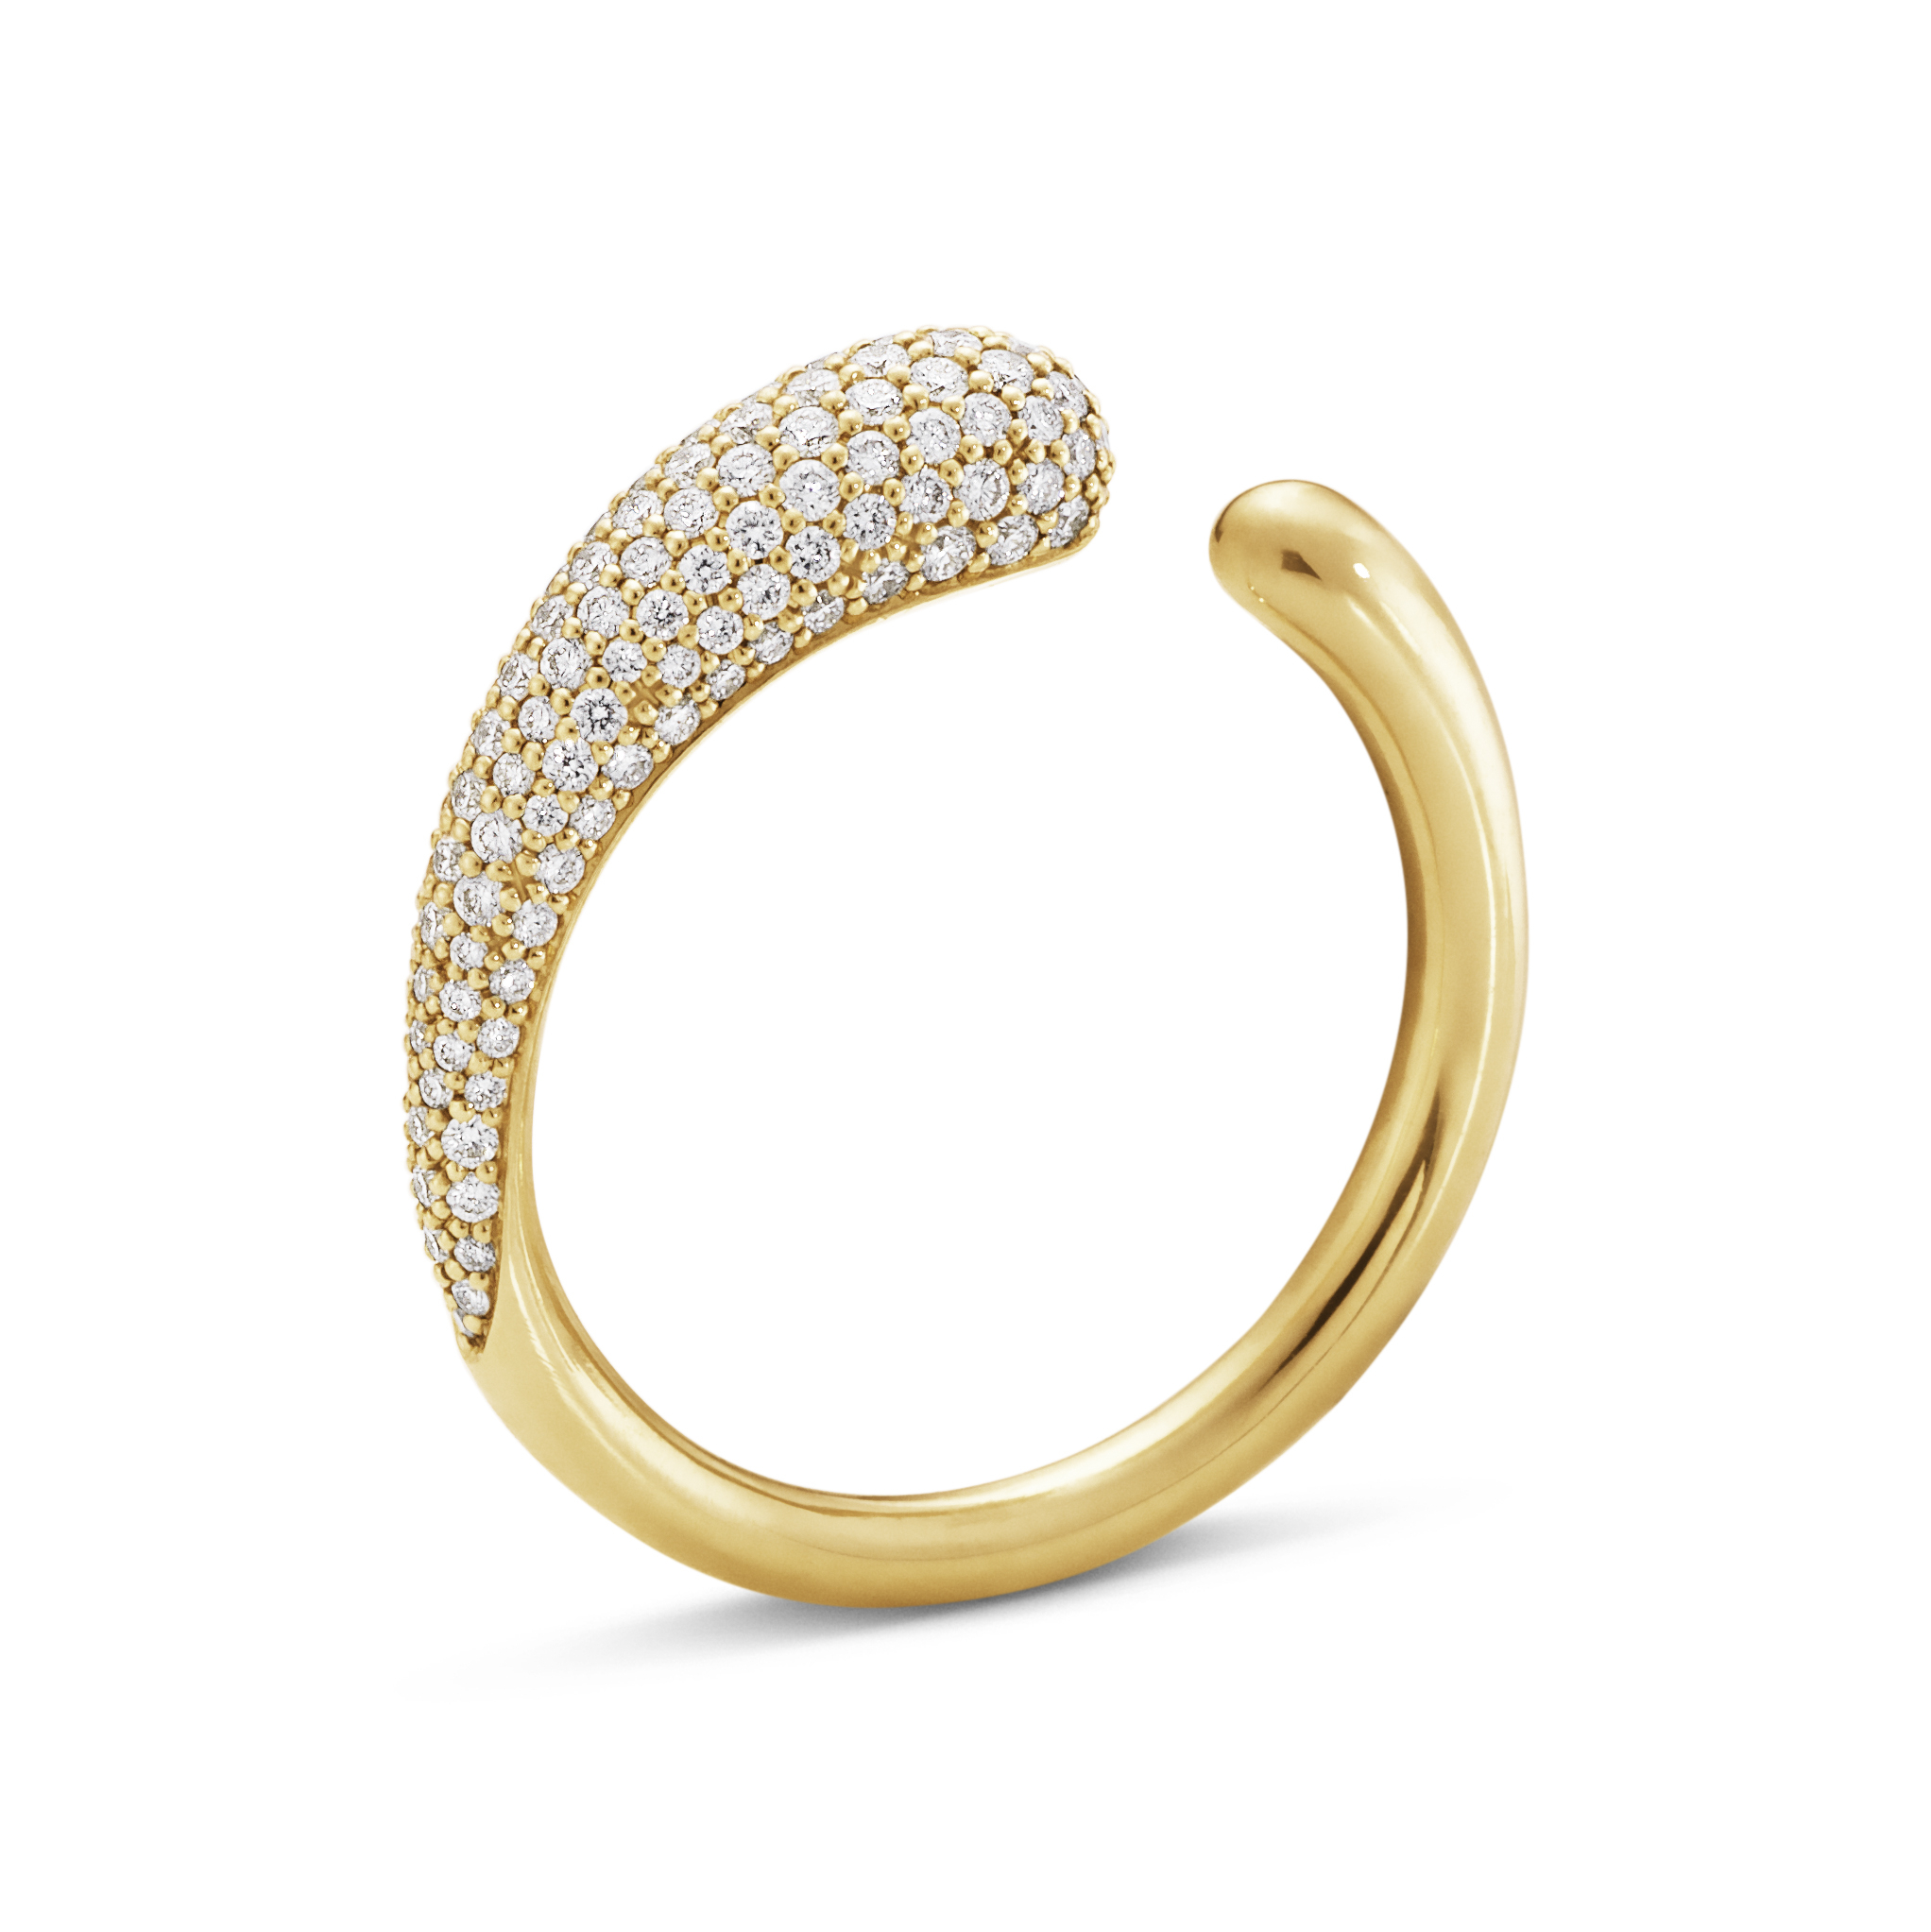 Image of   Georg Jensen Mercy ring i guld med brillanter